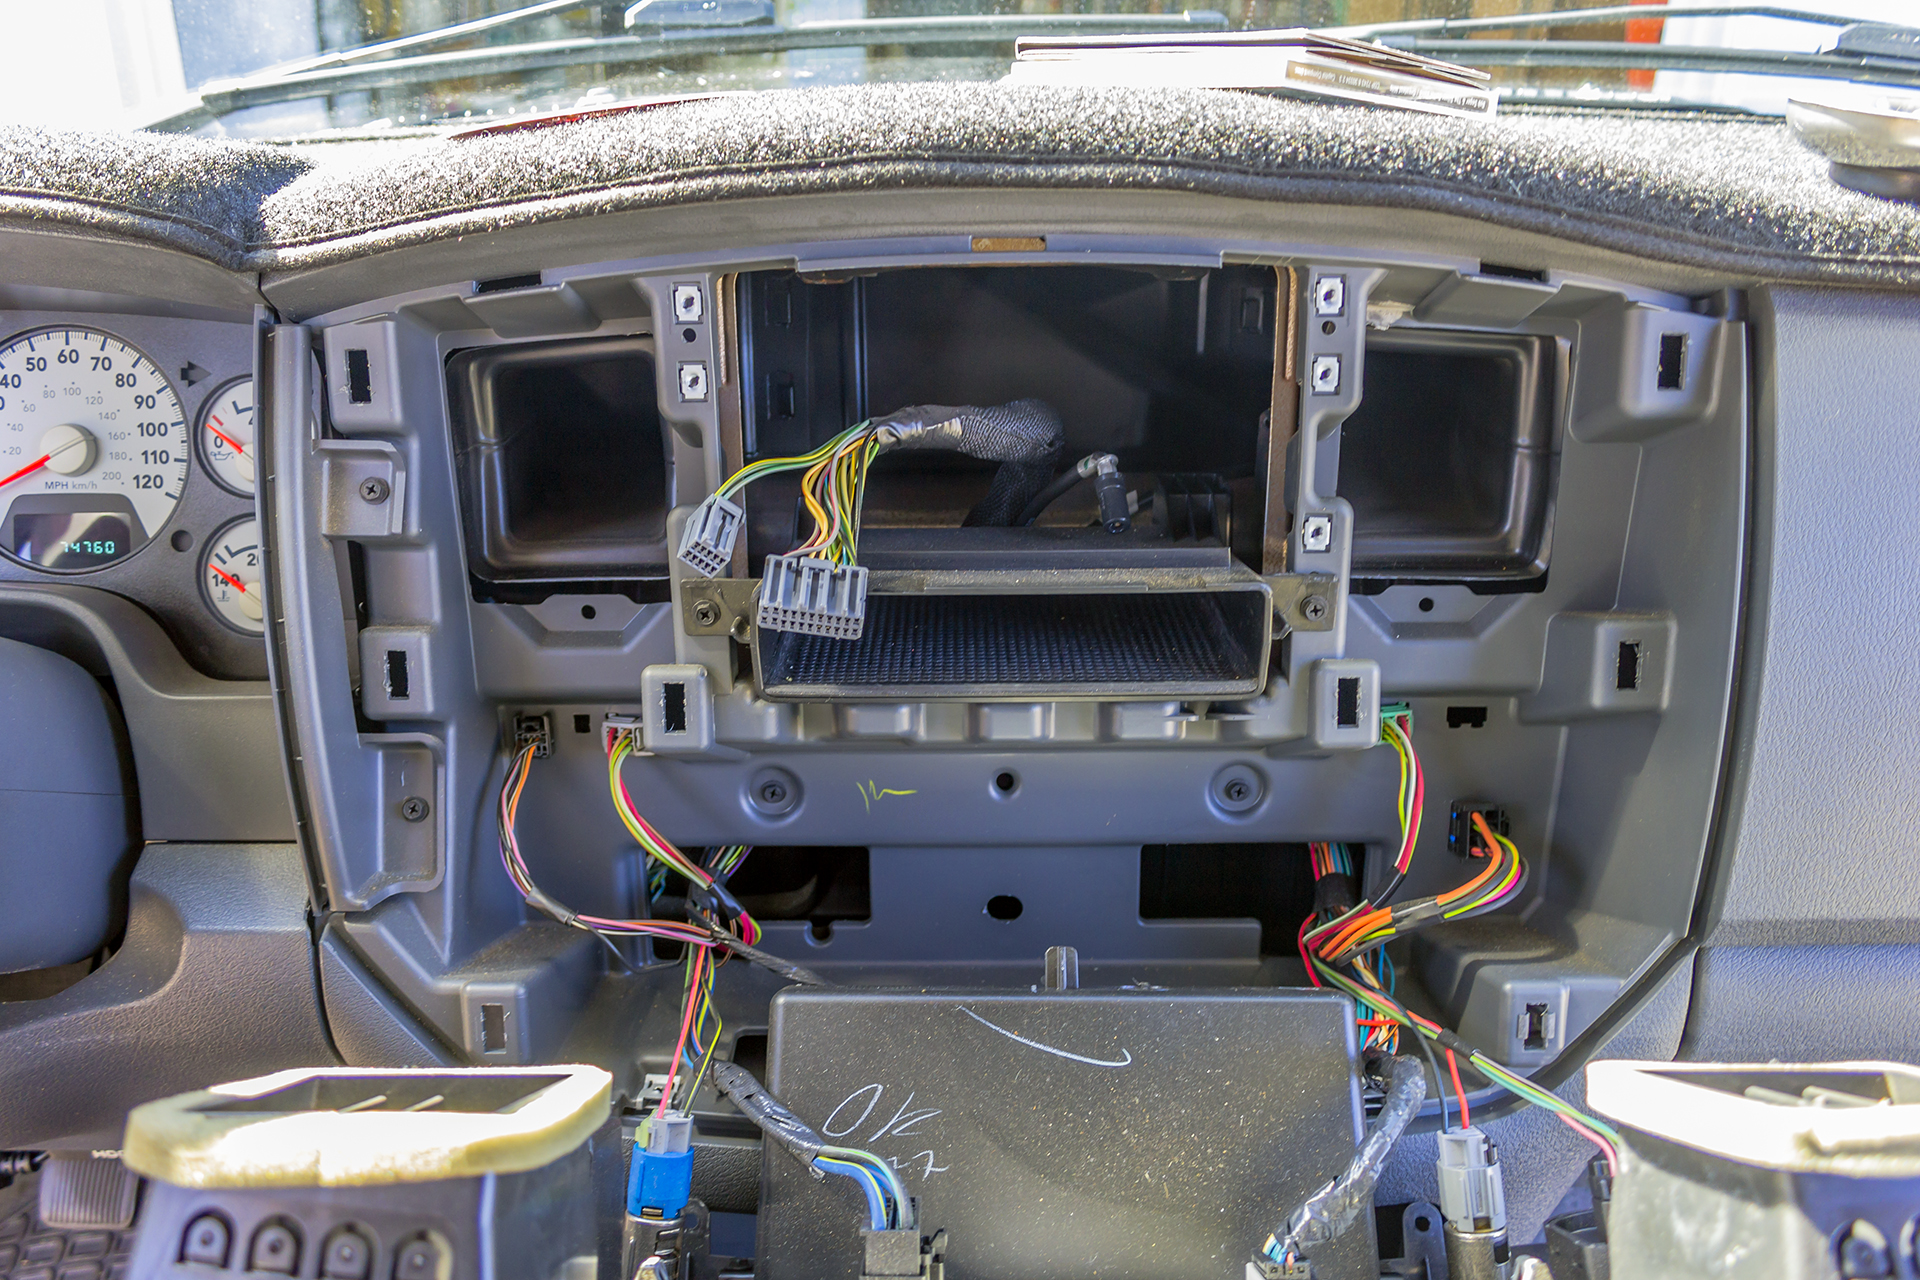 2007 Dodge Ram 2500 Deck And Speakers — Twelve Volt TechnologiesTwelve Volt Technologies